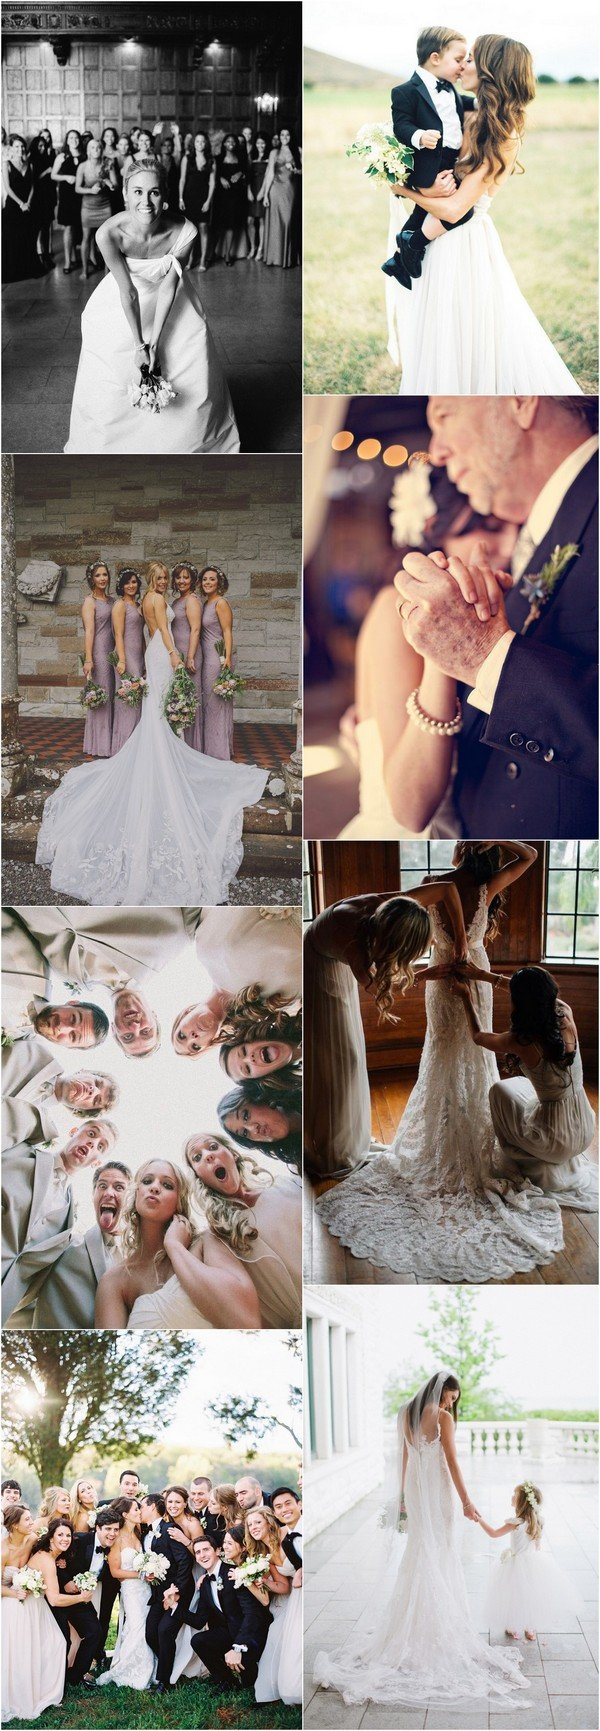 20 Best Wedding Photo Ideas To Have